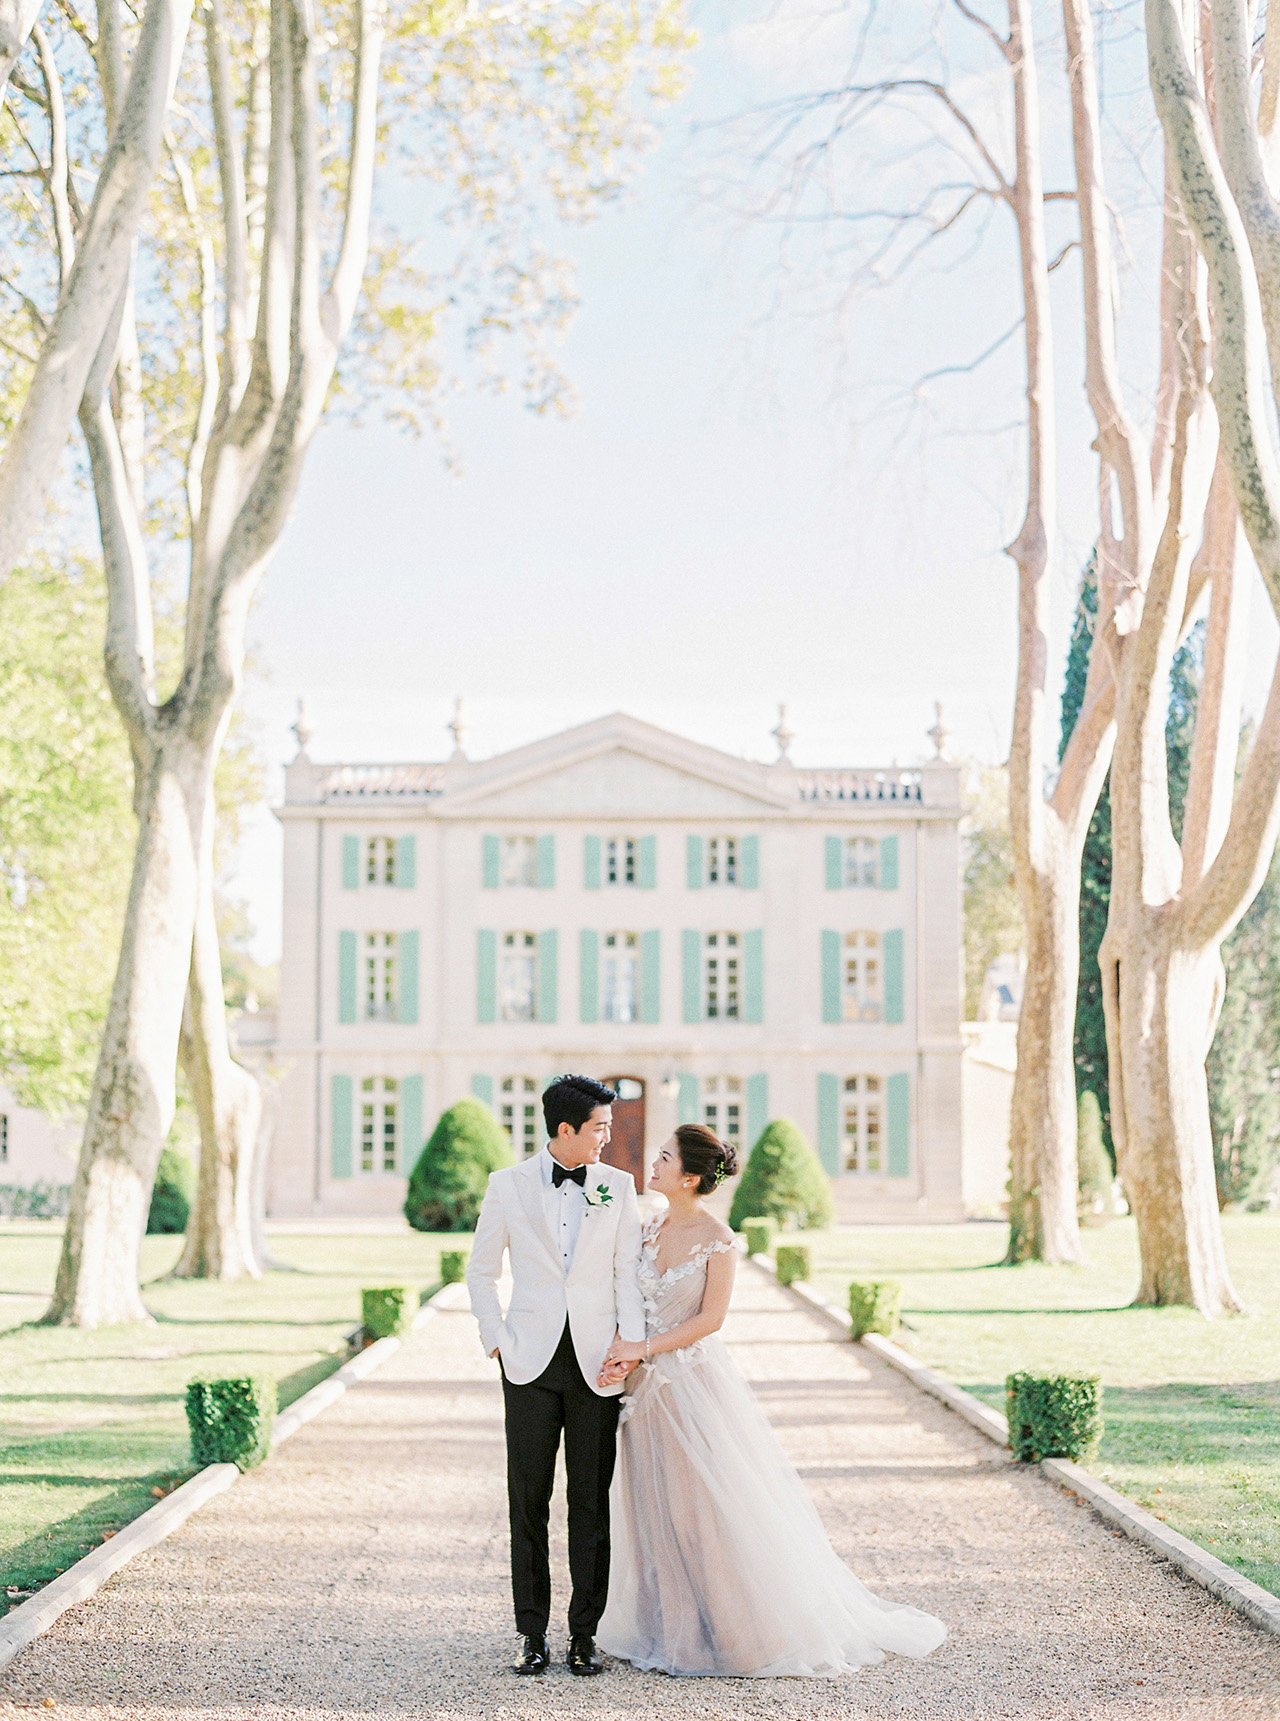 nancy sangho wedding couple in front of chateau